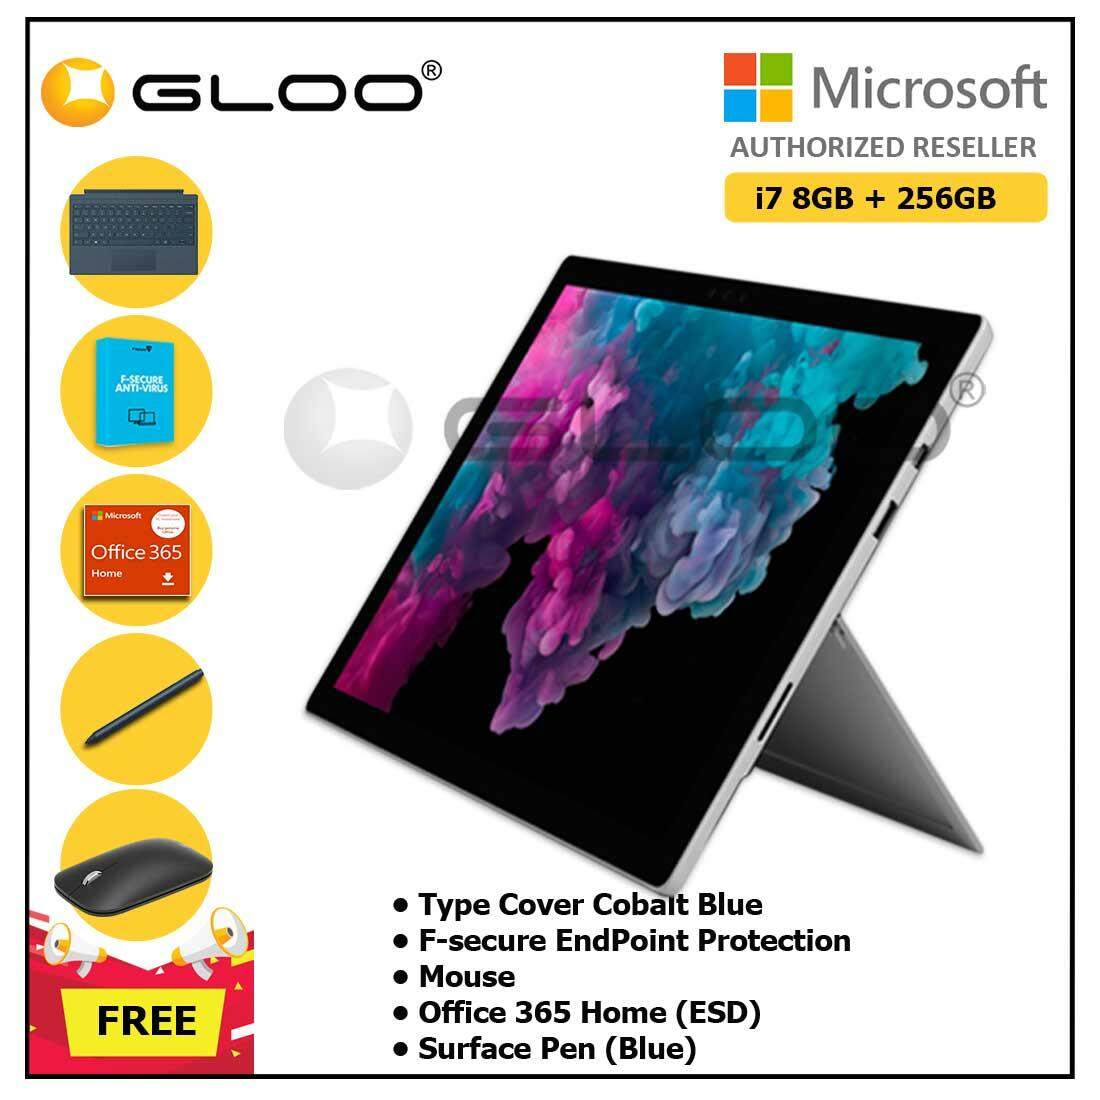 Microsoft Surface Pro 6 Core i7/8GB RAM - 256GB + Type Cover Cobalt Blue + F-Secure End Point Protection + Office 365 Home (ESD) + Pen Cobalt Blue + Mouse